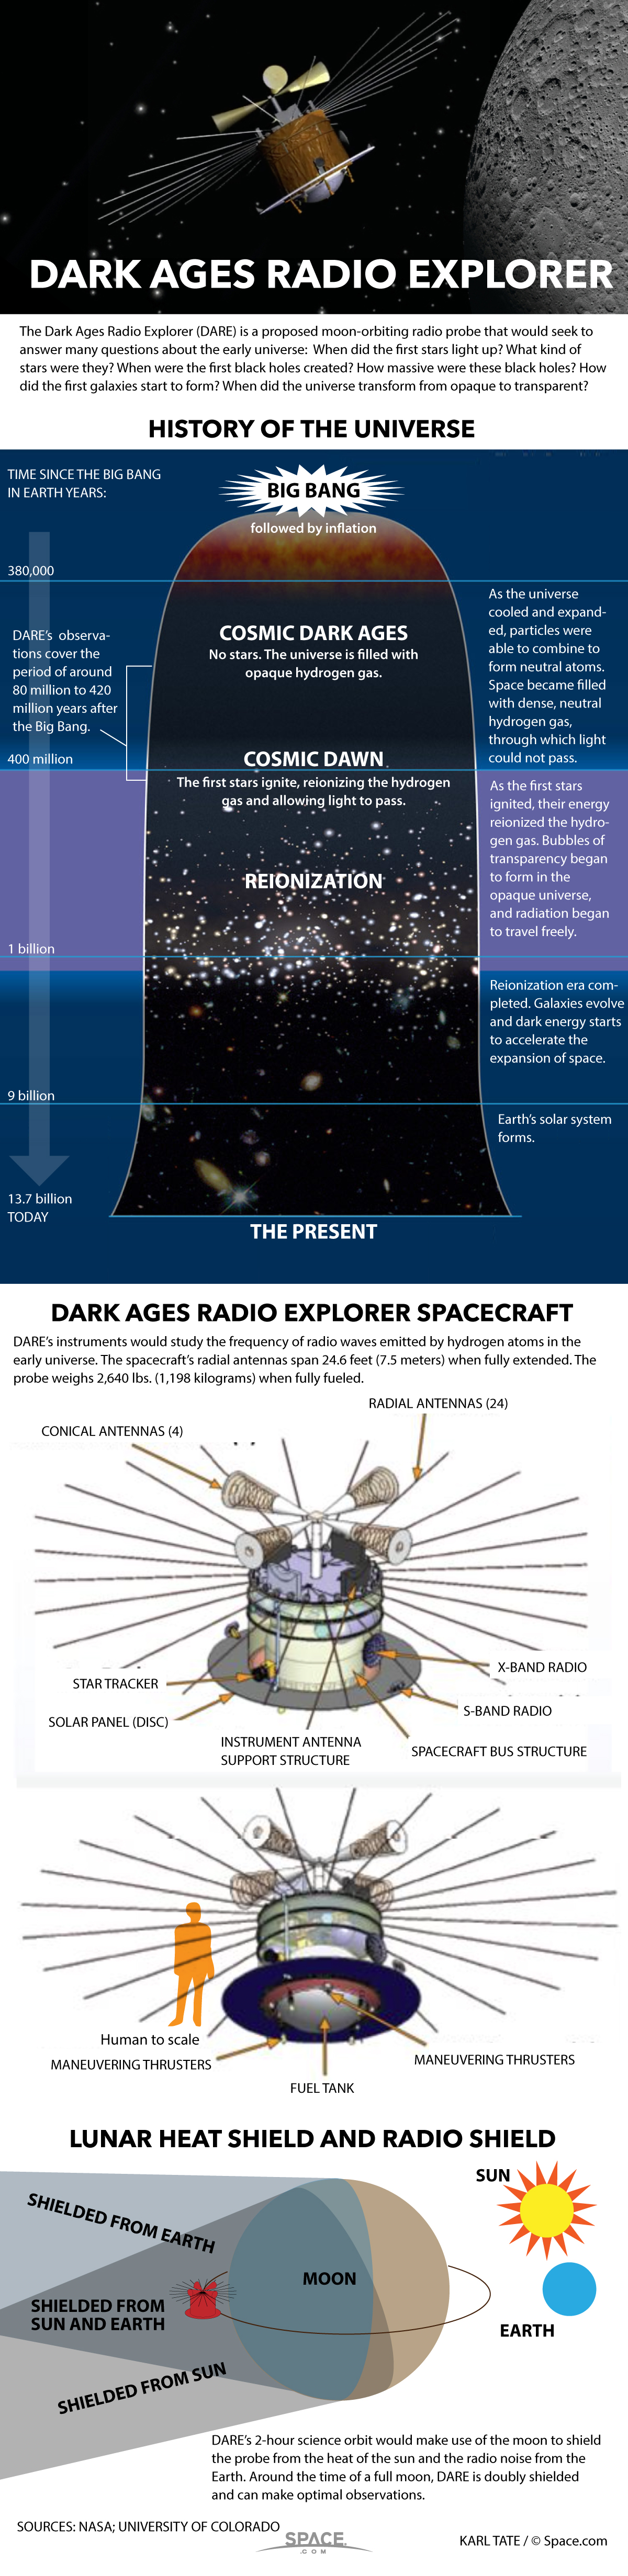 How the DARE Dark Ages Radio Explorer Spacecraft Would Work (Infographic)